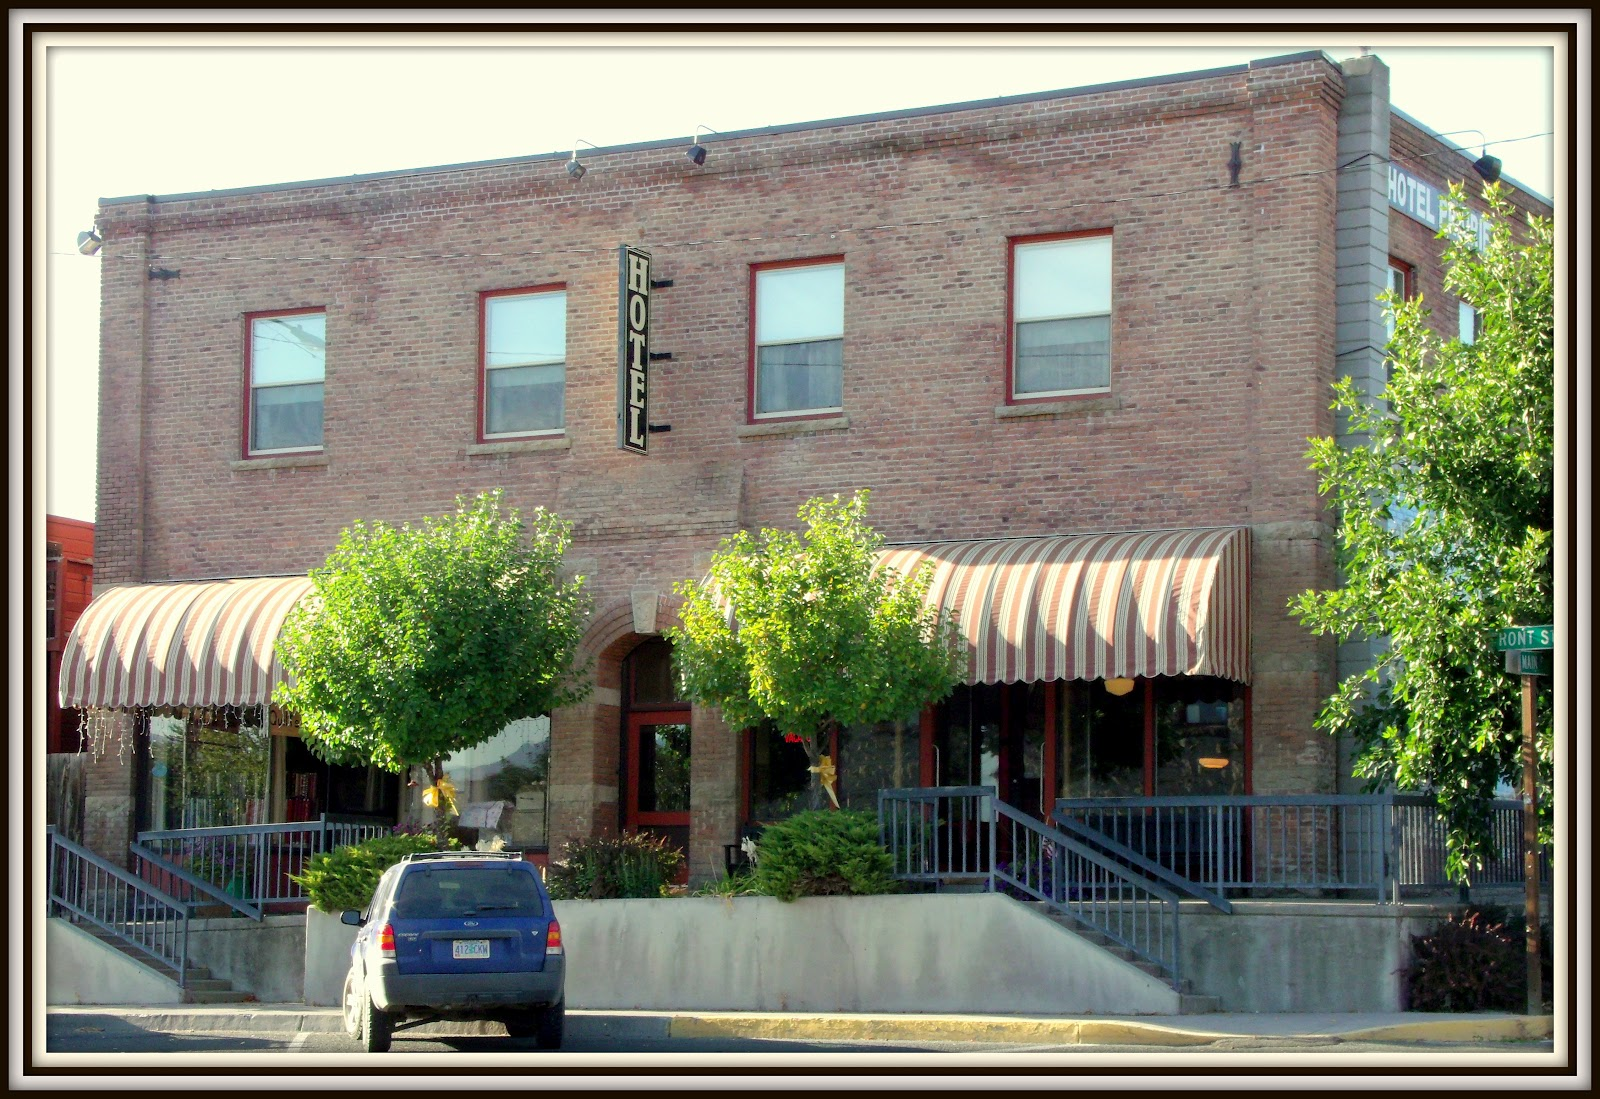 prairie city chat sites Best dining in prairie city, iowa: see 89 tripadvisor traveler reviews of 4 prairie city restaurants and search by cuisine, price, location, and more.